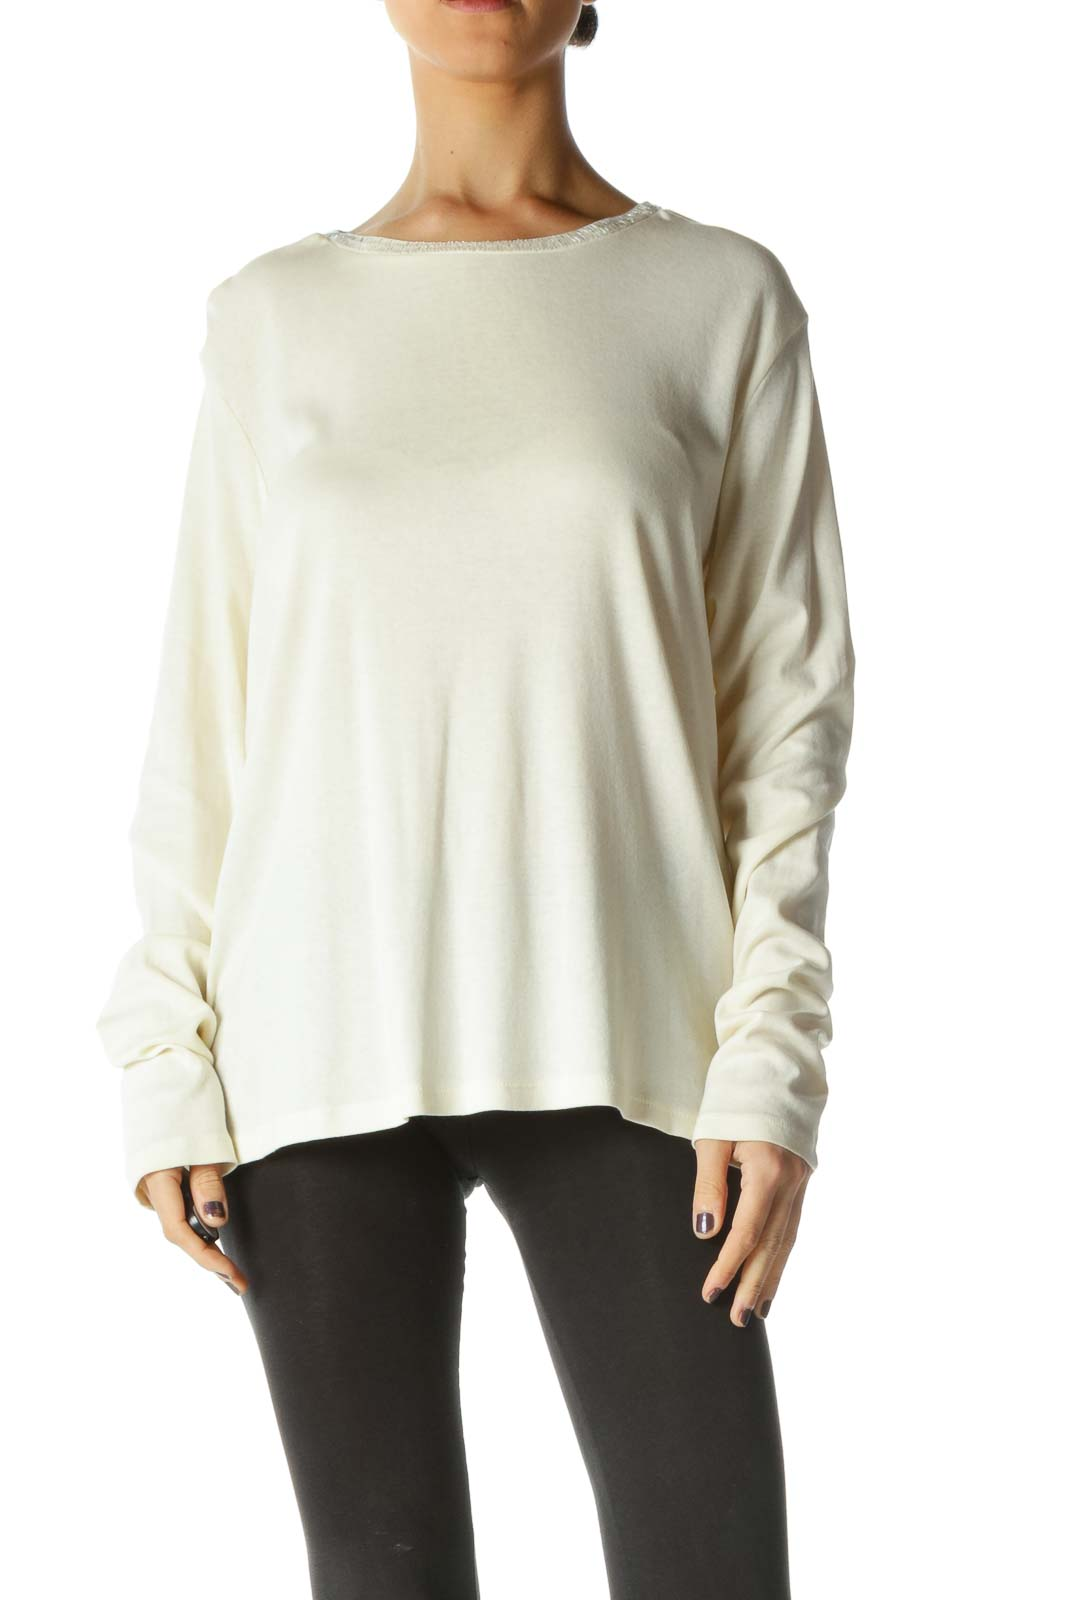 White Solid Crewneck Casual Blouse